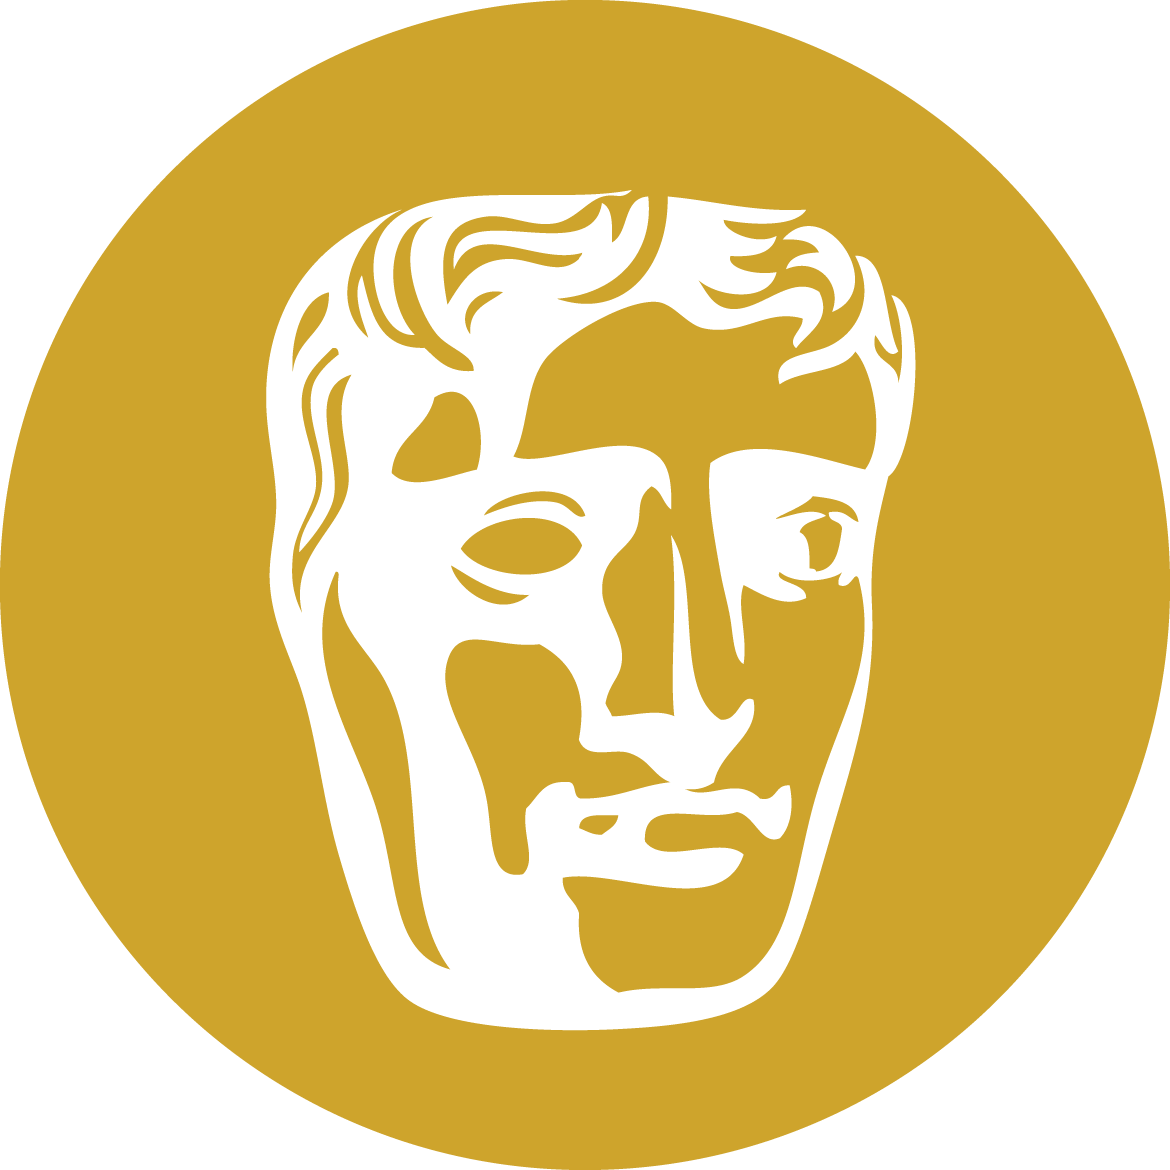 BAFTA - Best Film's icon